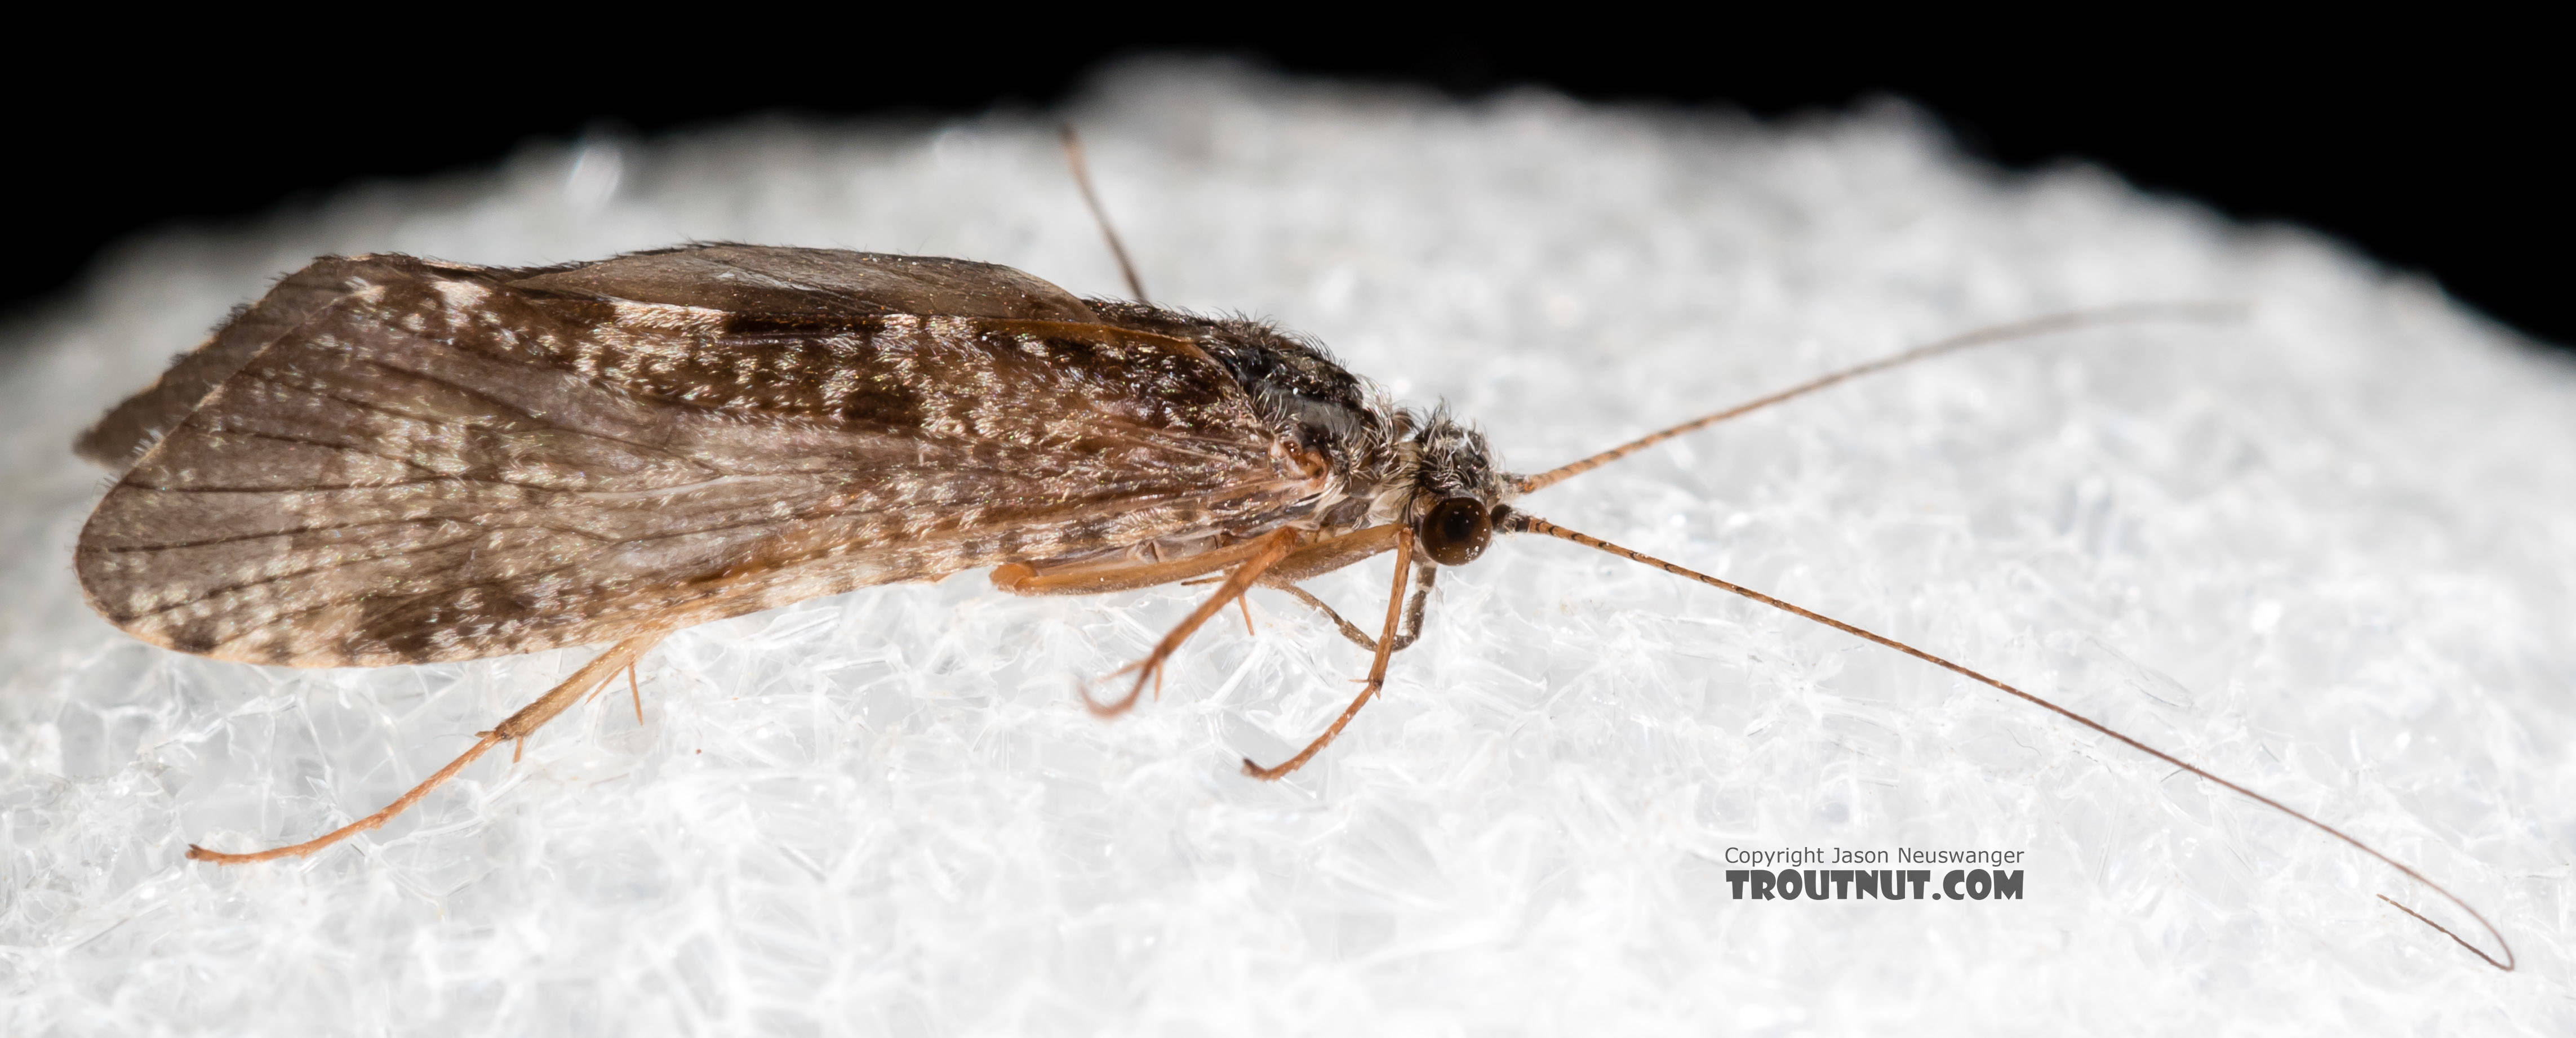 Male Hydropsyche (Spotted Sedges) Caddisfly Adult from the Henry's Fork of the Snake River in Idaho